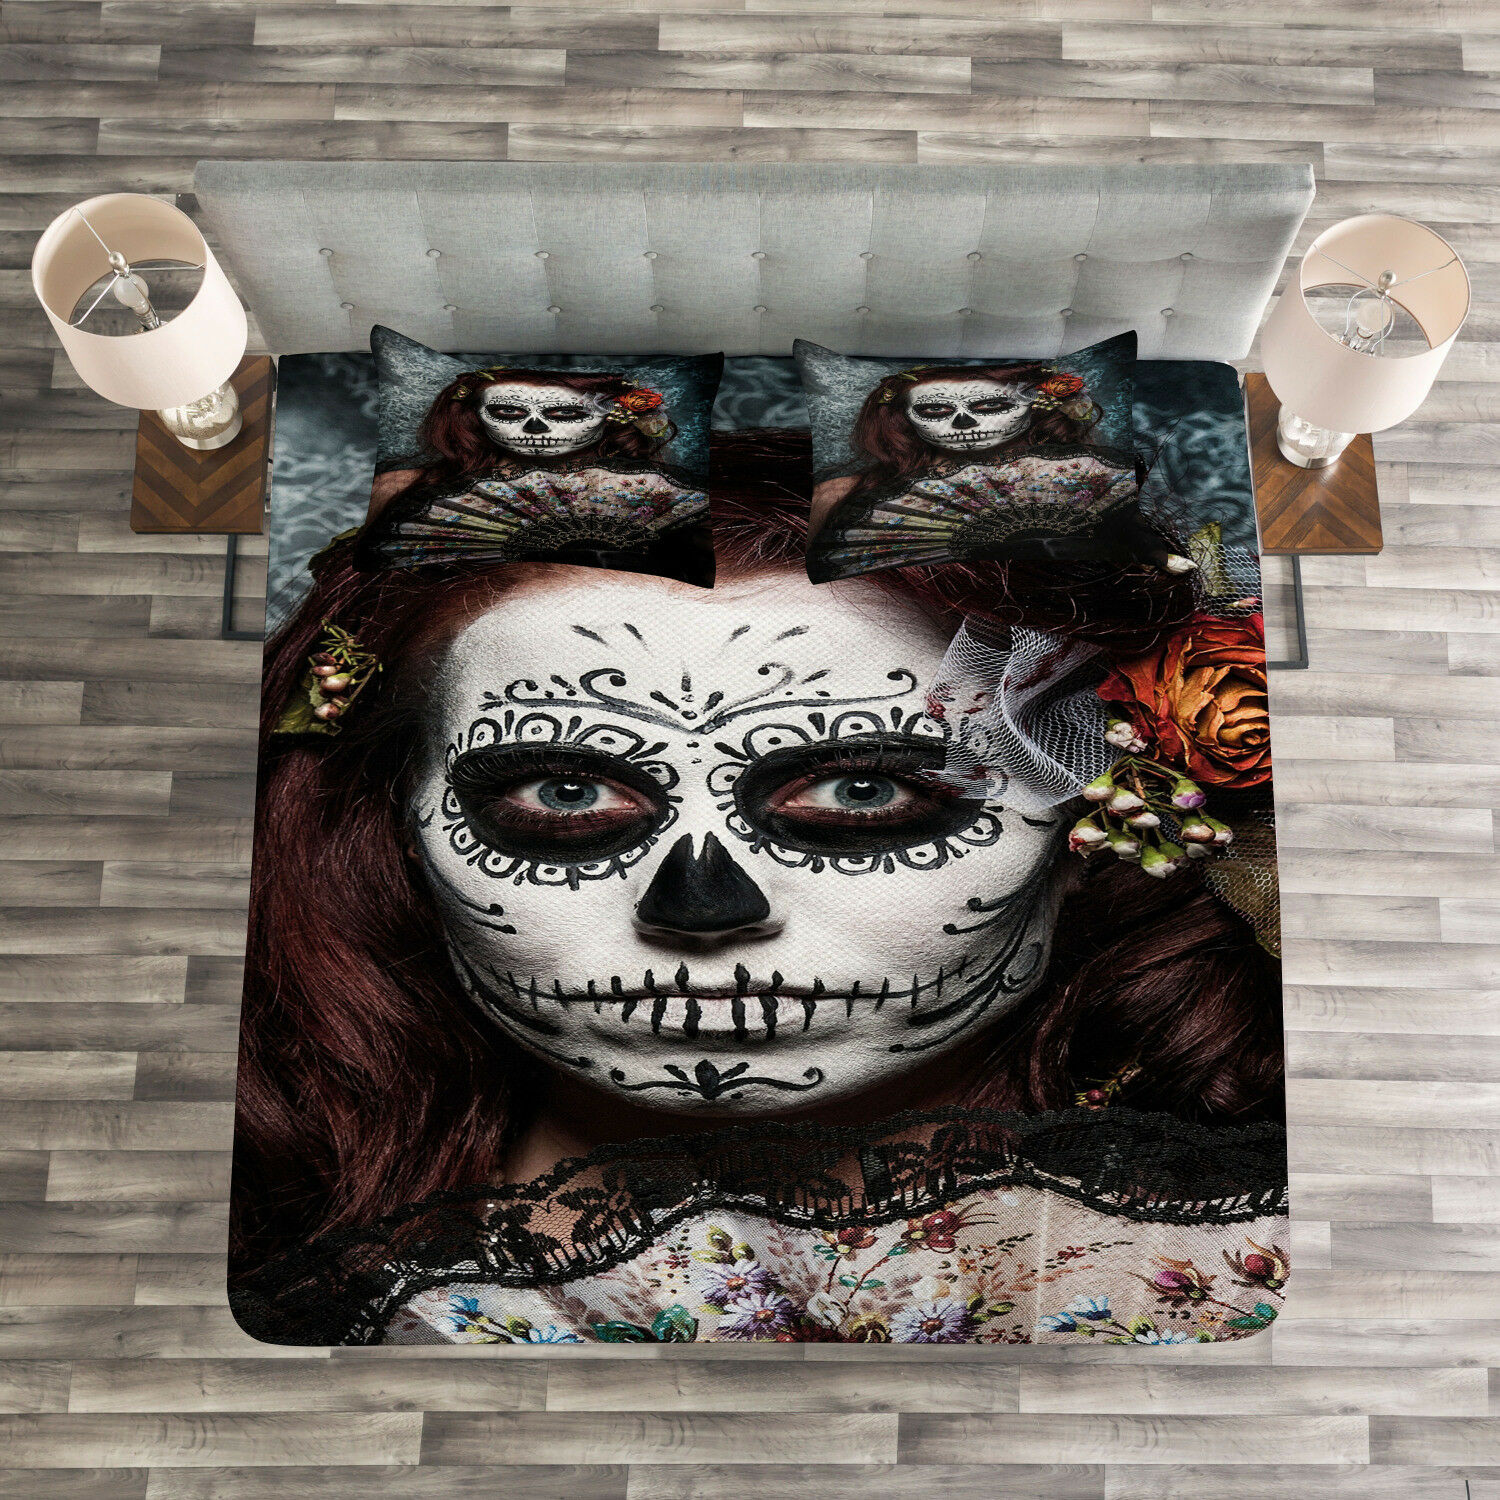 Festive Quilted Bedspread & Pillow Shams Set, Skull Scary Mask Print